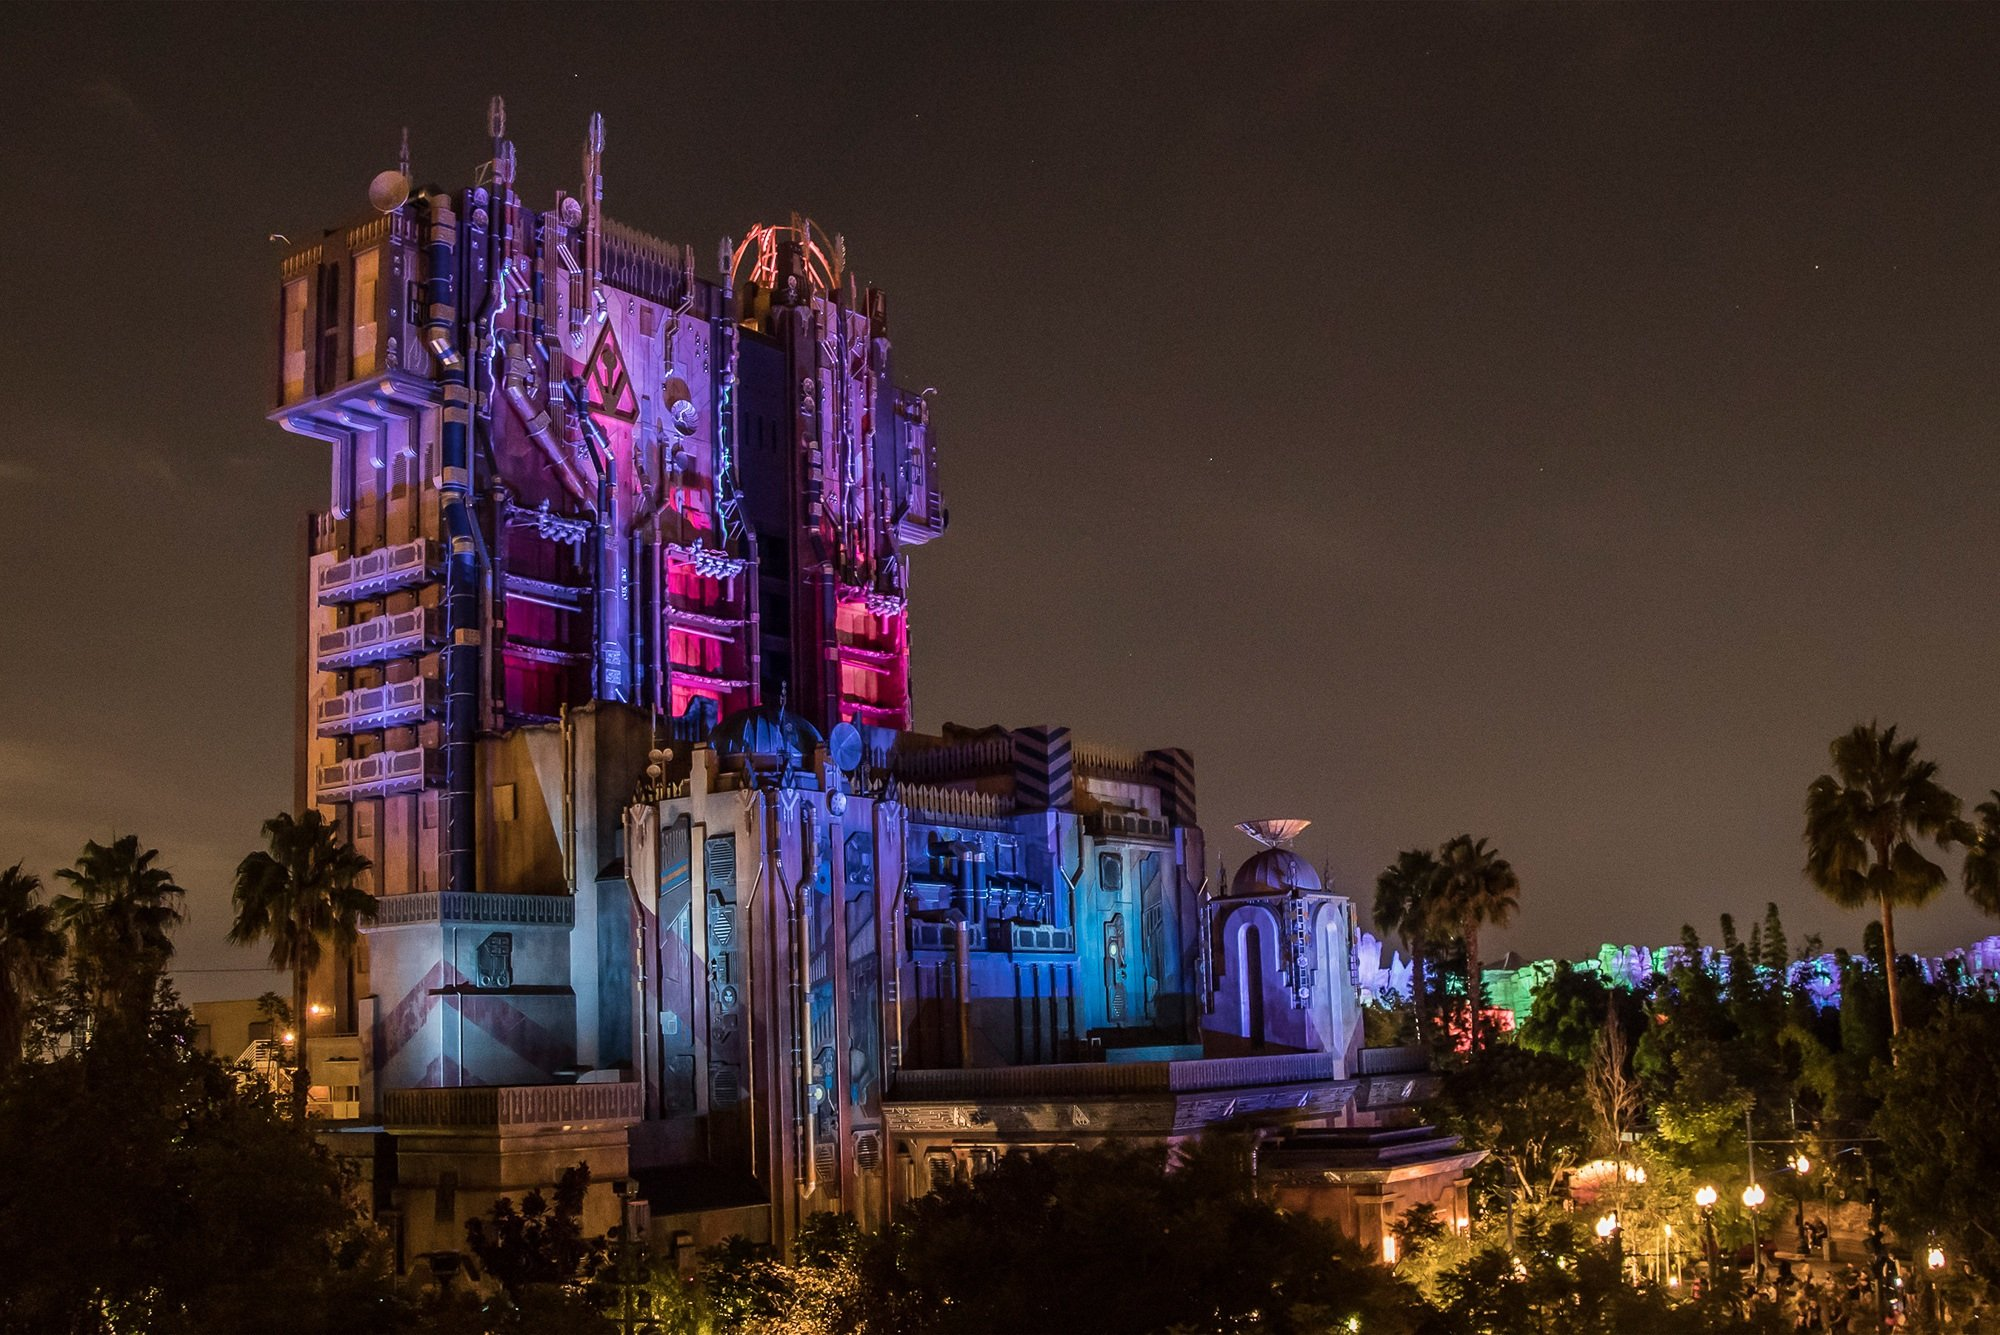 Guardians of the Galaxy–Monsters After Dark! during Halloween at Disney California Adventure Park